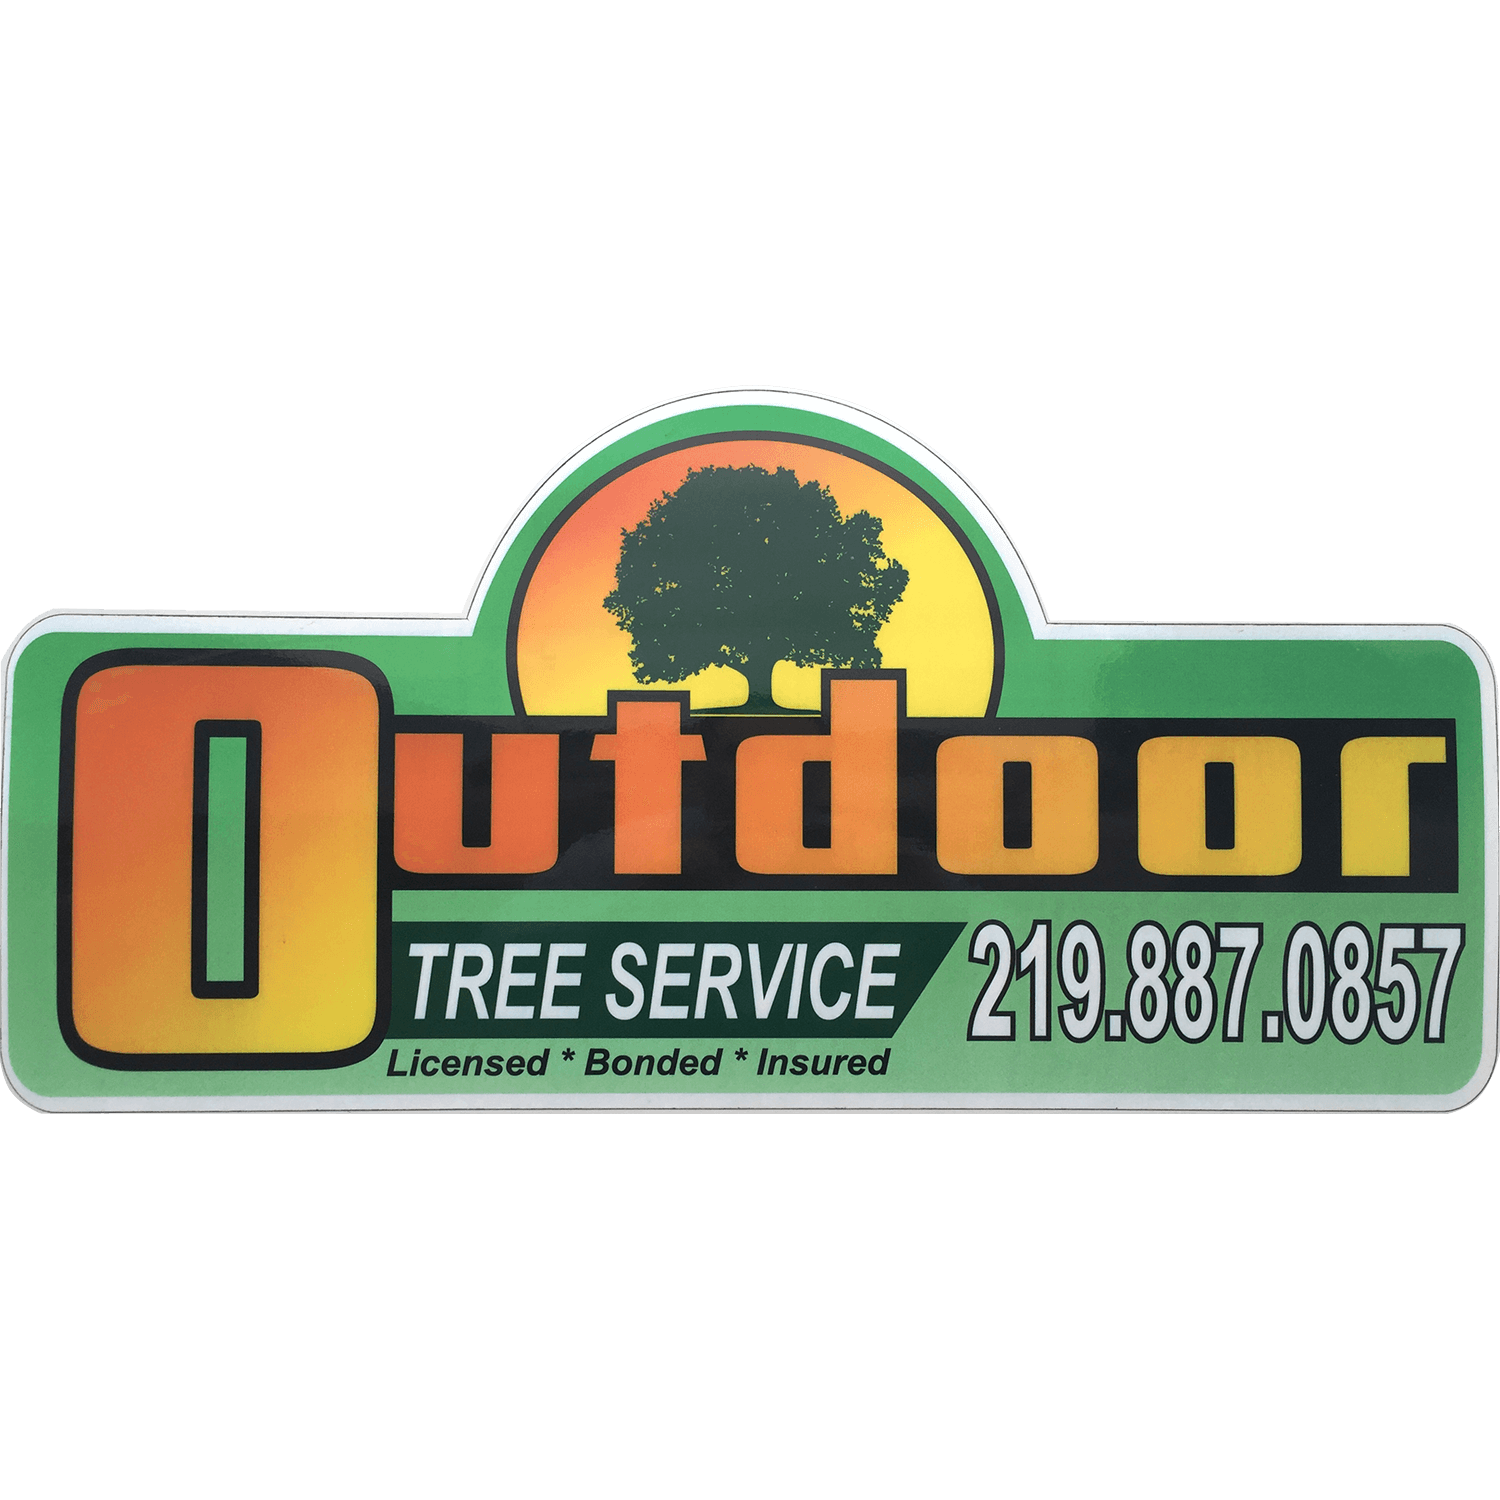 Outdoor Tree Services - Gary, IN - Tree Services